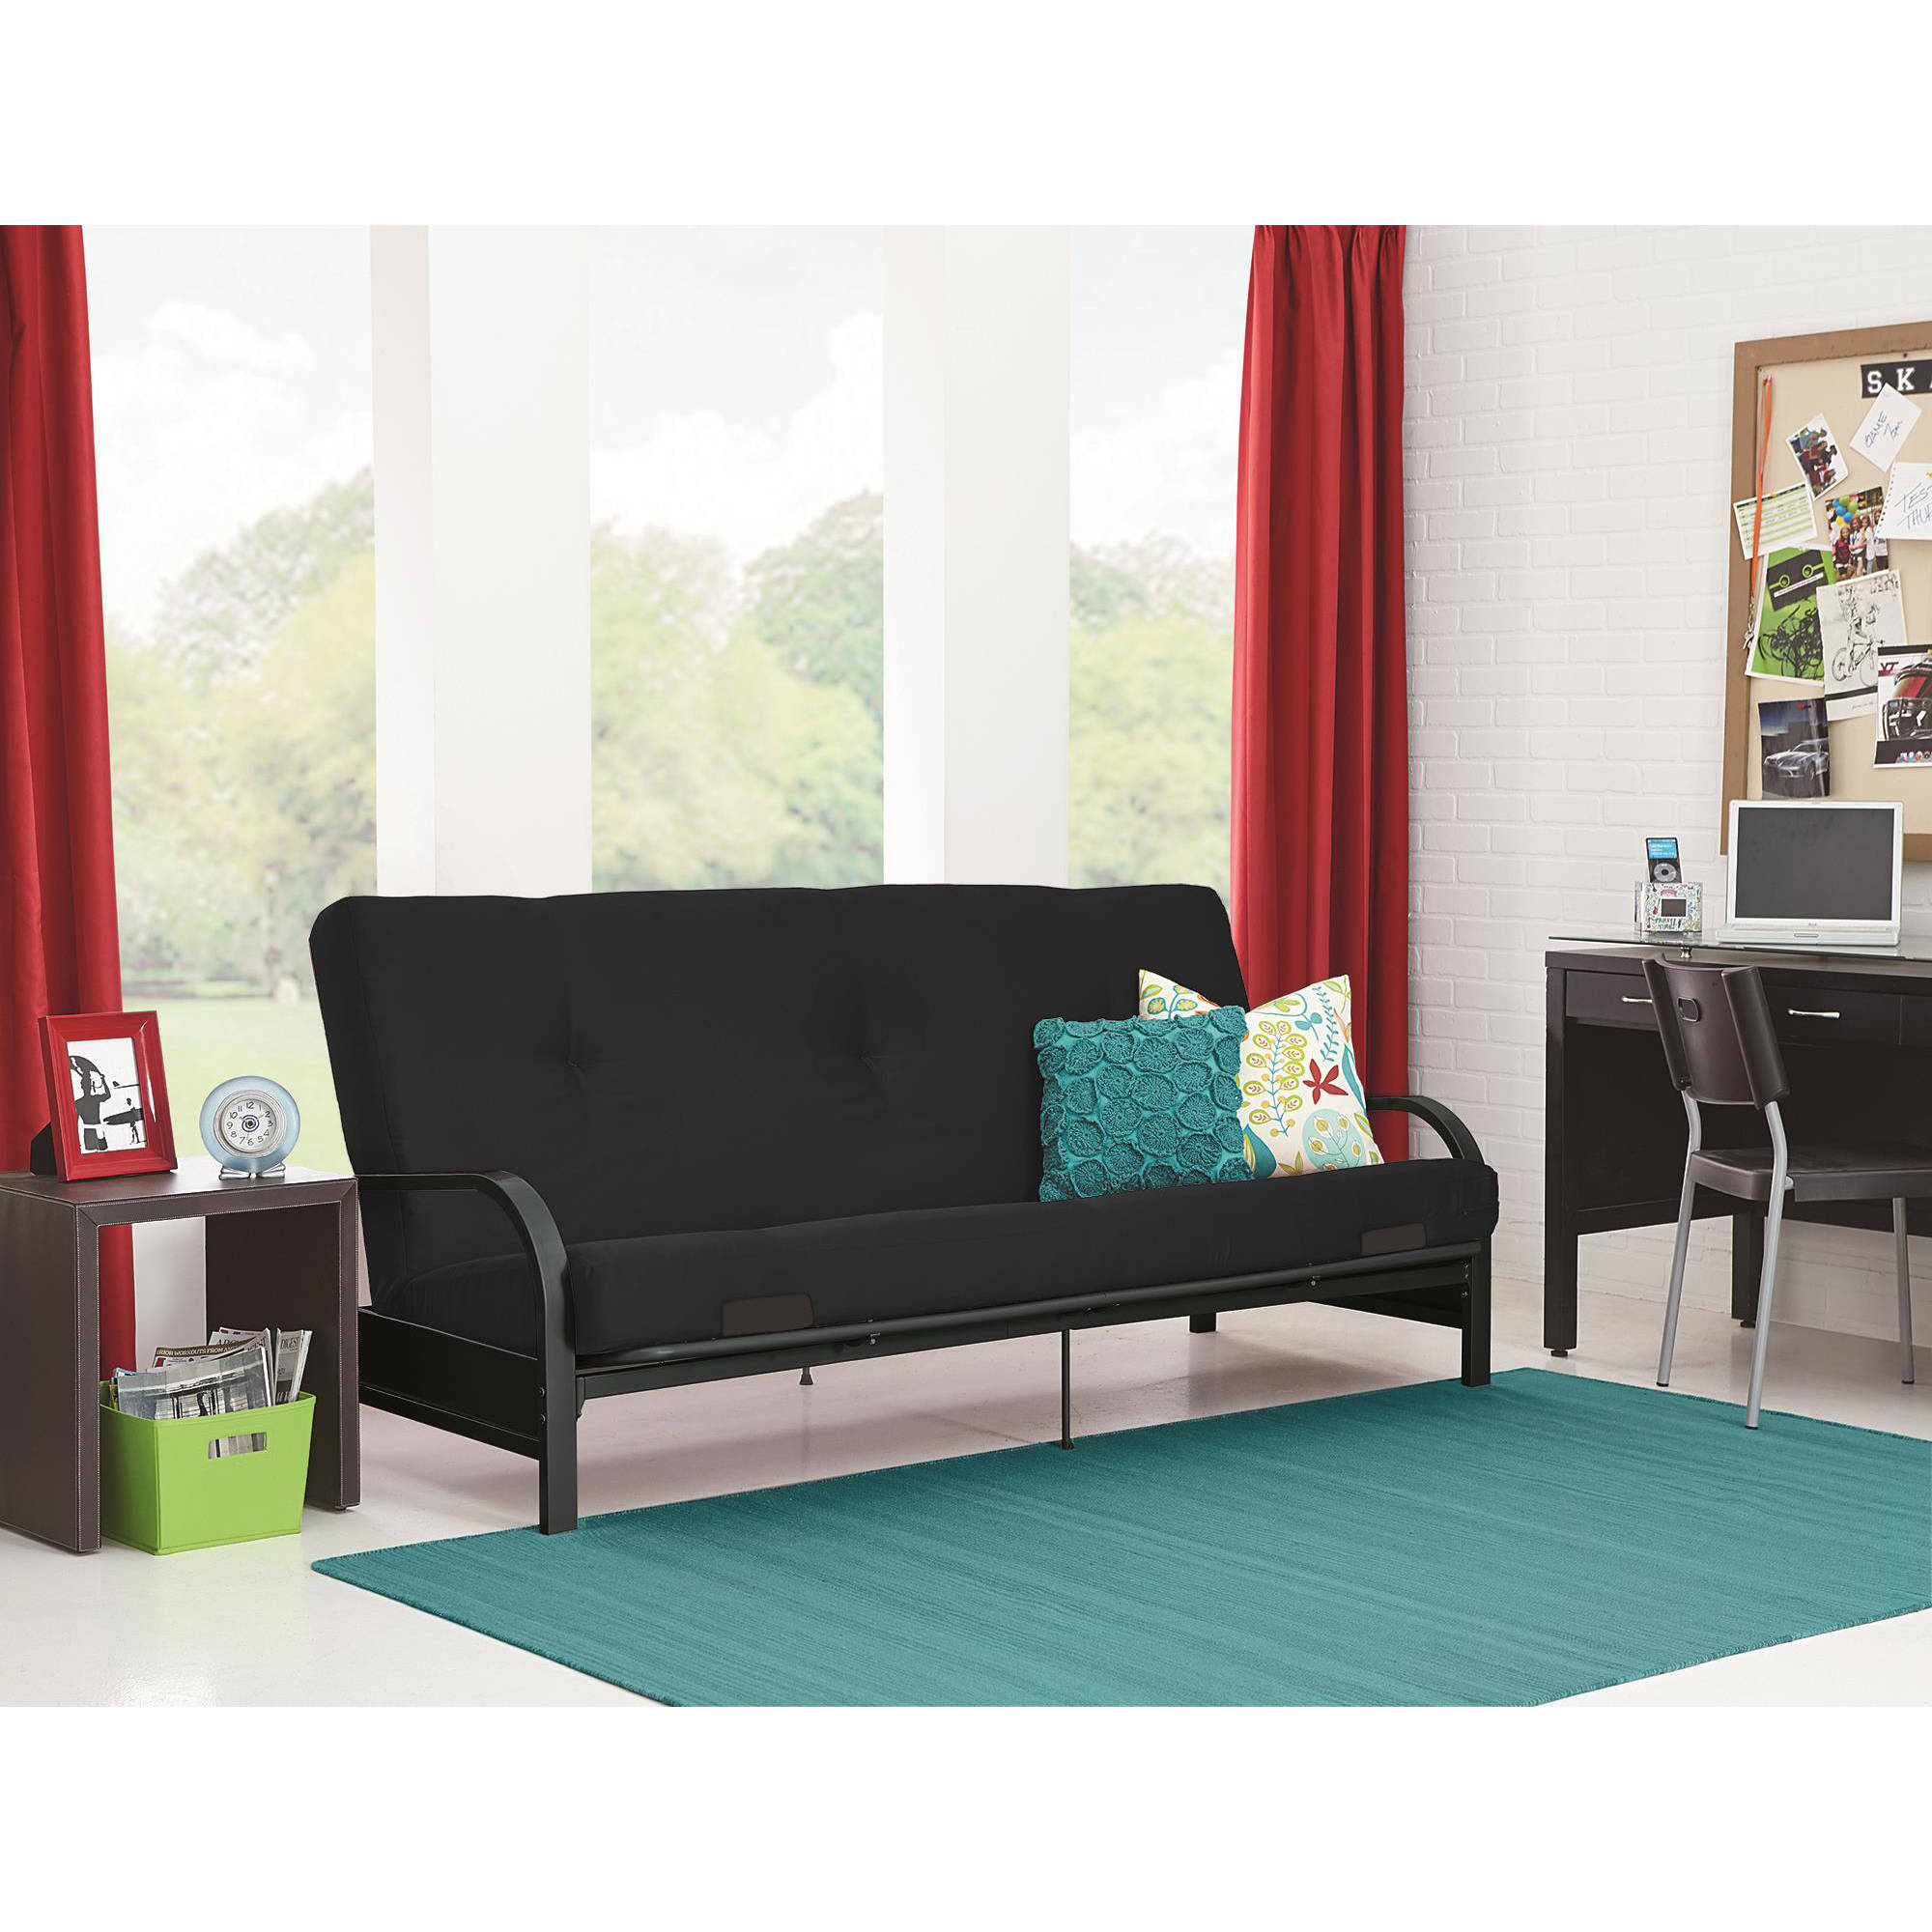 Mainstays Black Metal Arm Futon with Full Size Mattress, Multiple Colors